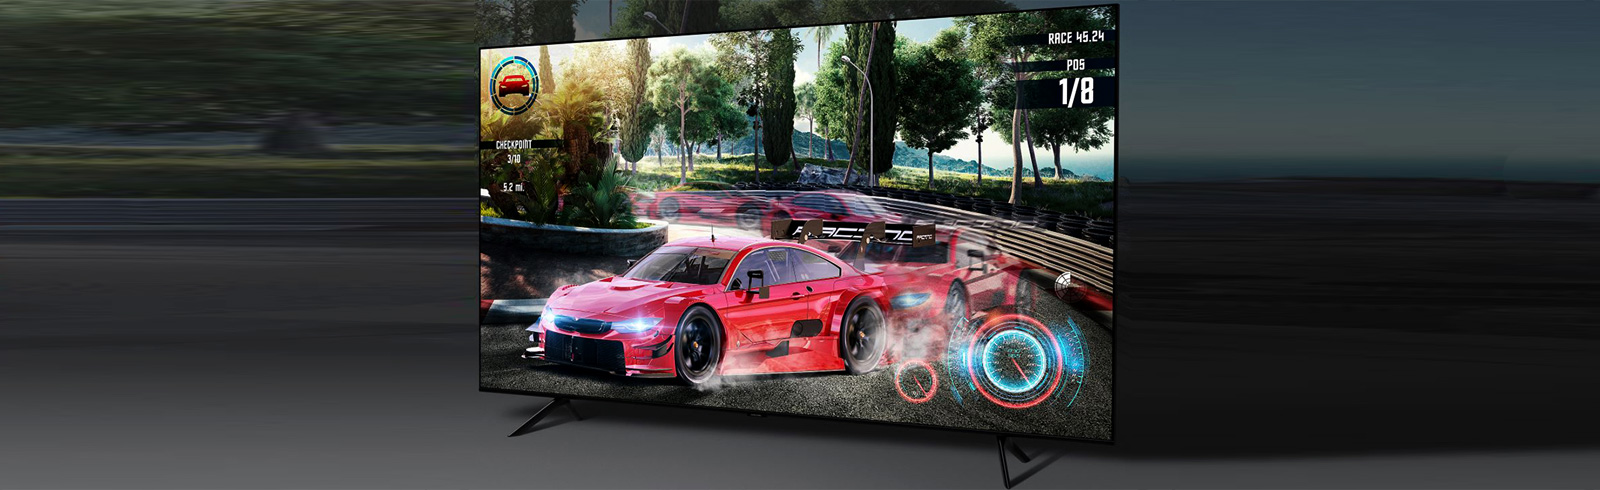 Samsung engineers elaborate on how Samsung's QLED TVs are optimized for gaming